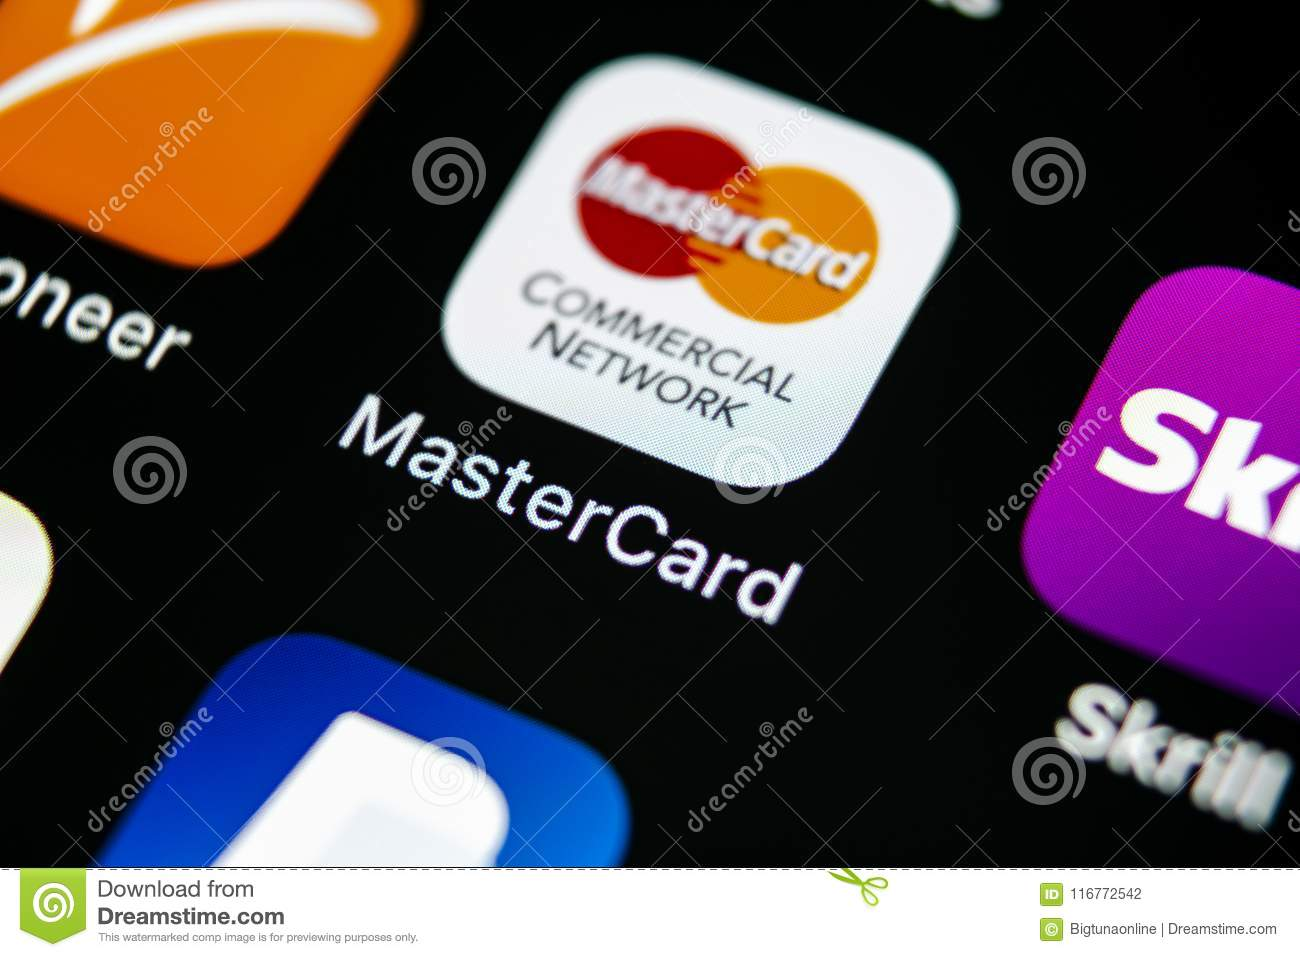 Mastercard application icon on apple iphone x screen close up download mastercard application icon on apple iphone x screen close up master card icon reheart Gallery